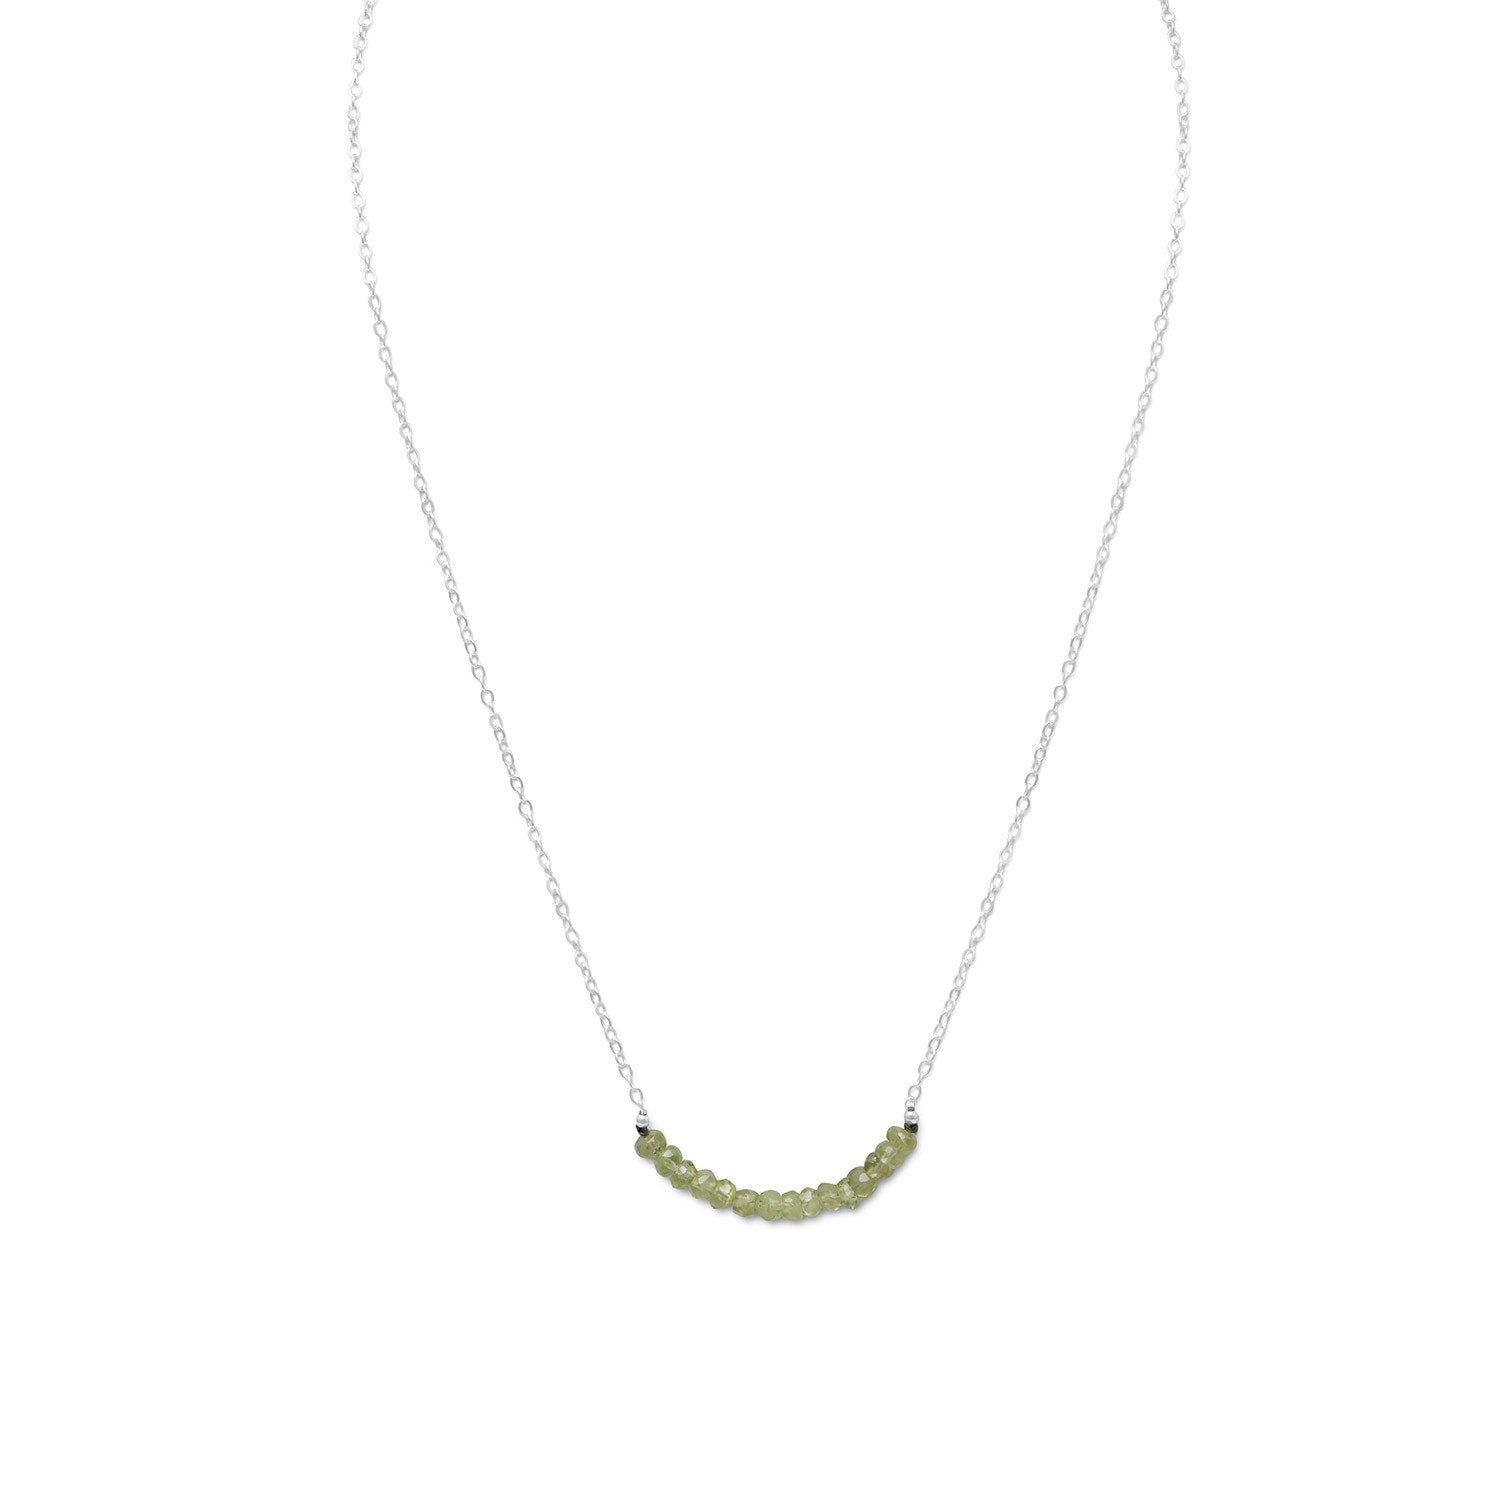 Faceted Peridot Bead Necklace - August Birthstone - the-southern-magnolia-too